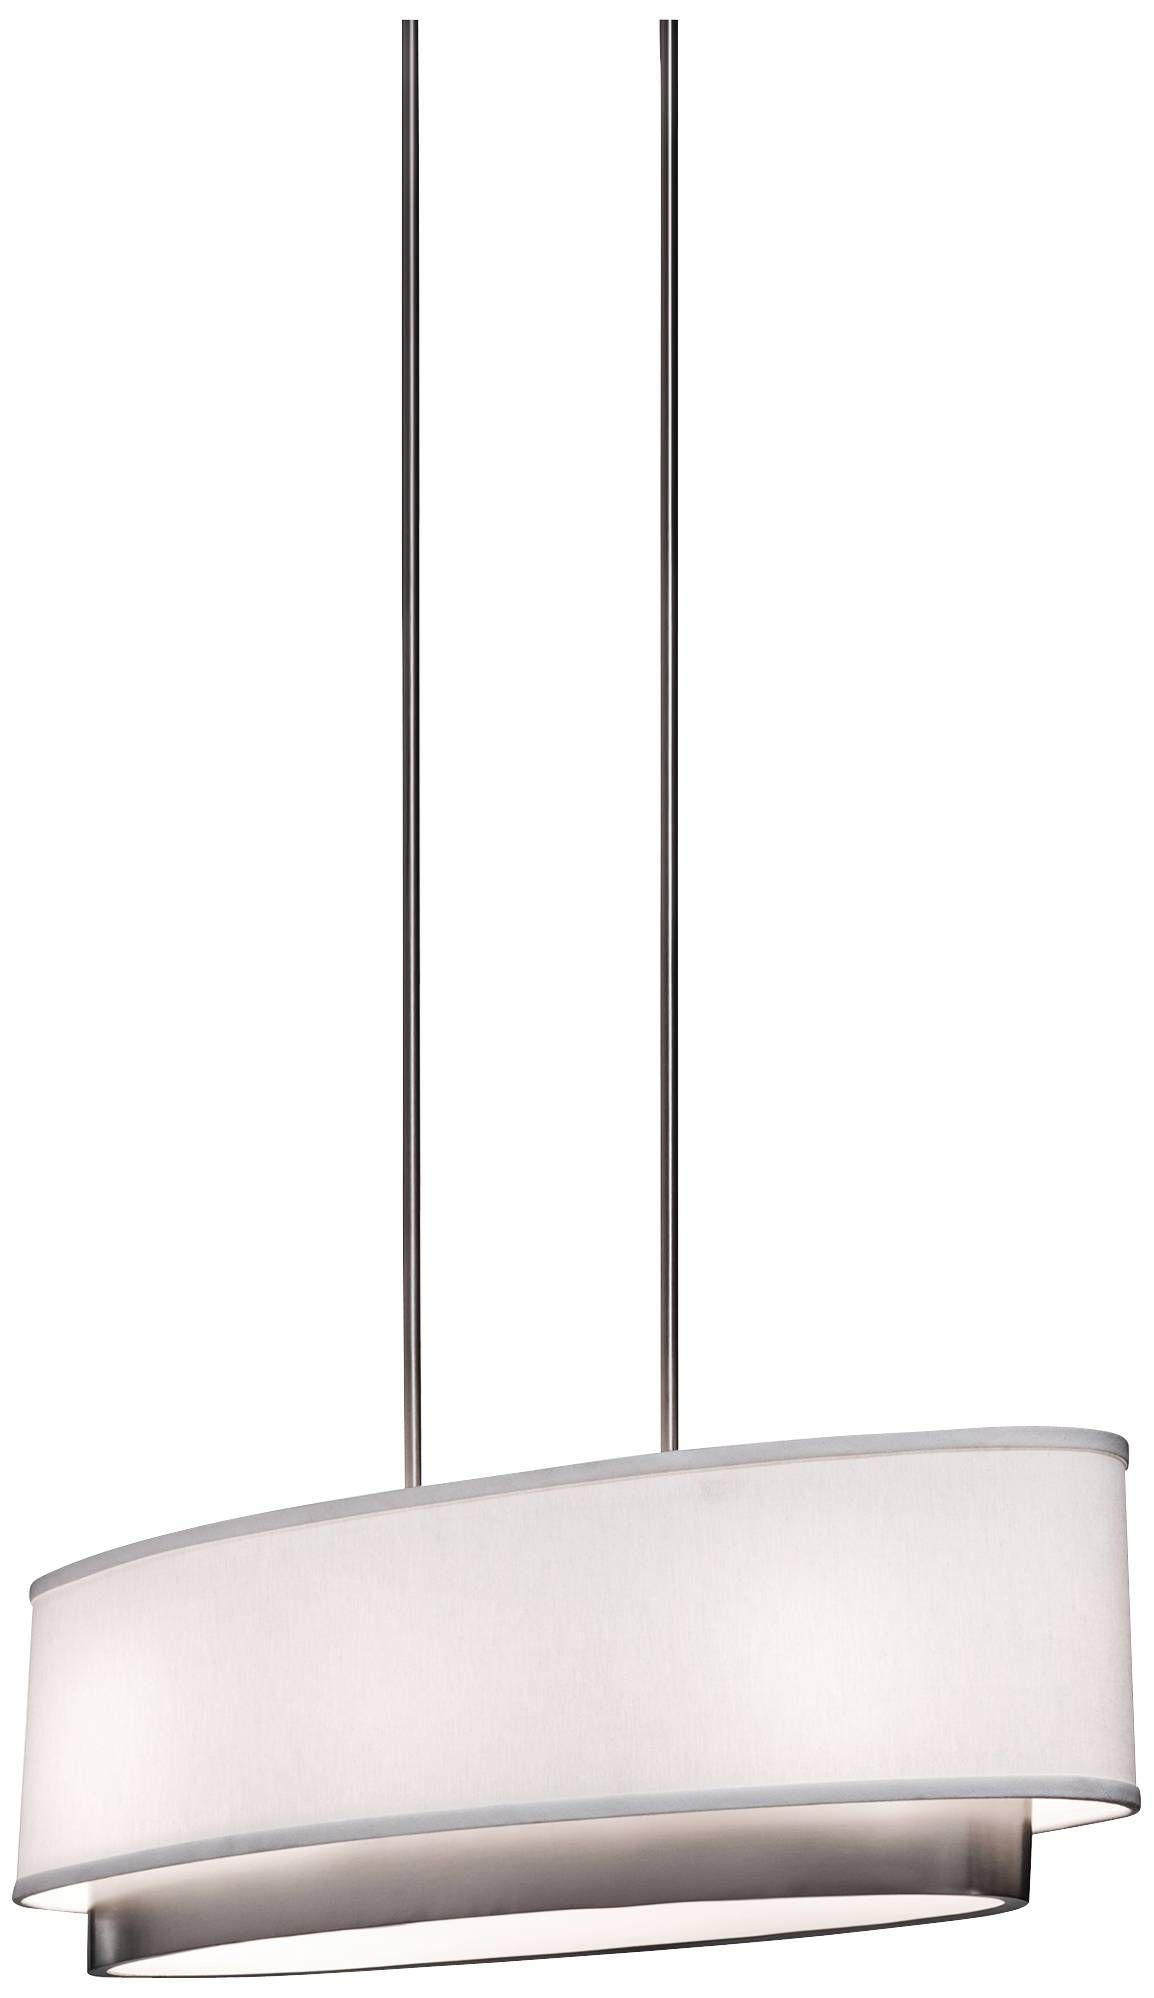 Ancd By A Rectangular White Linen Shade This Contemporary Brushed Nickel Pendant Light Will Brighten Any Modern Room Height X Wide Depth